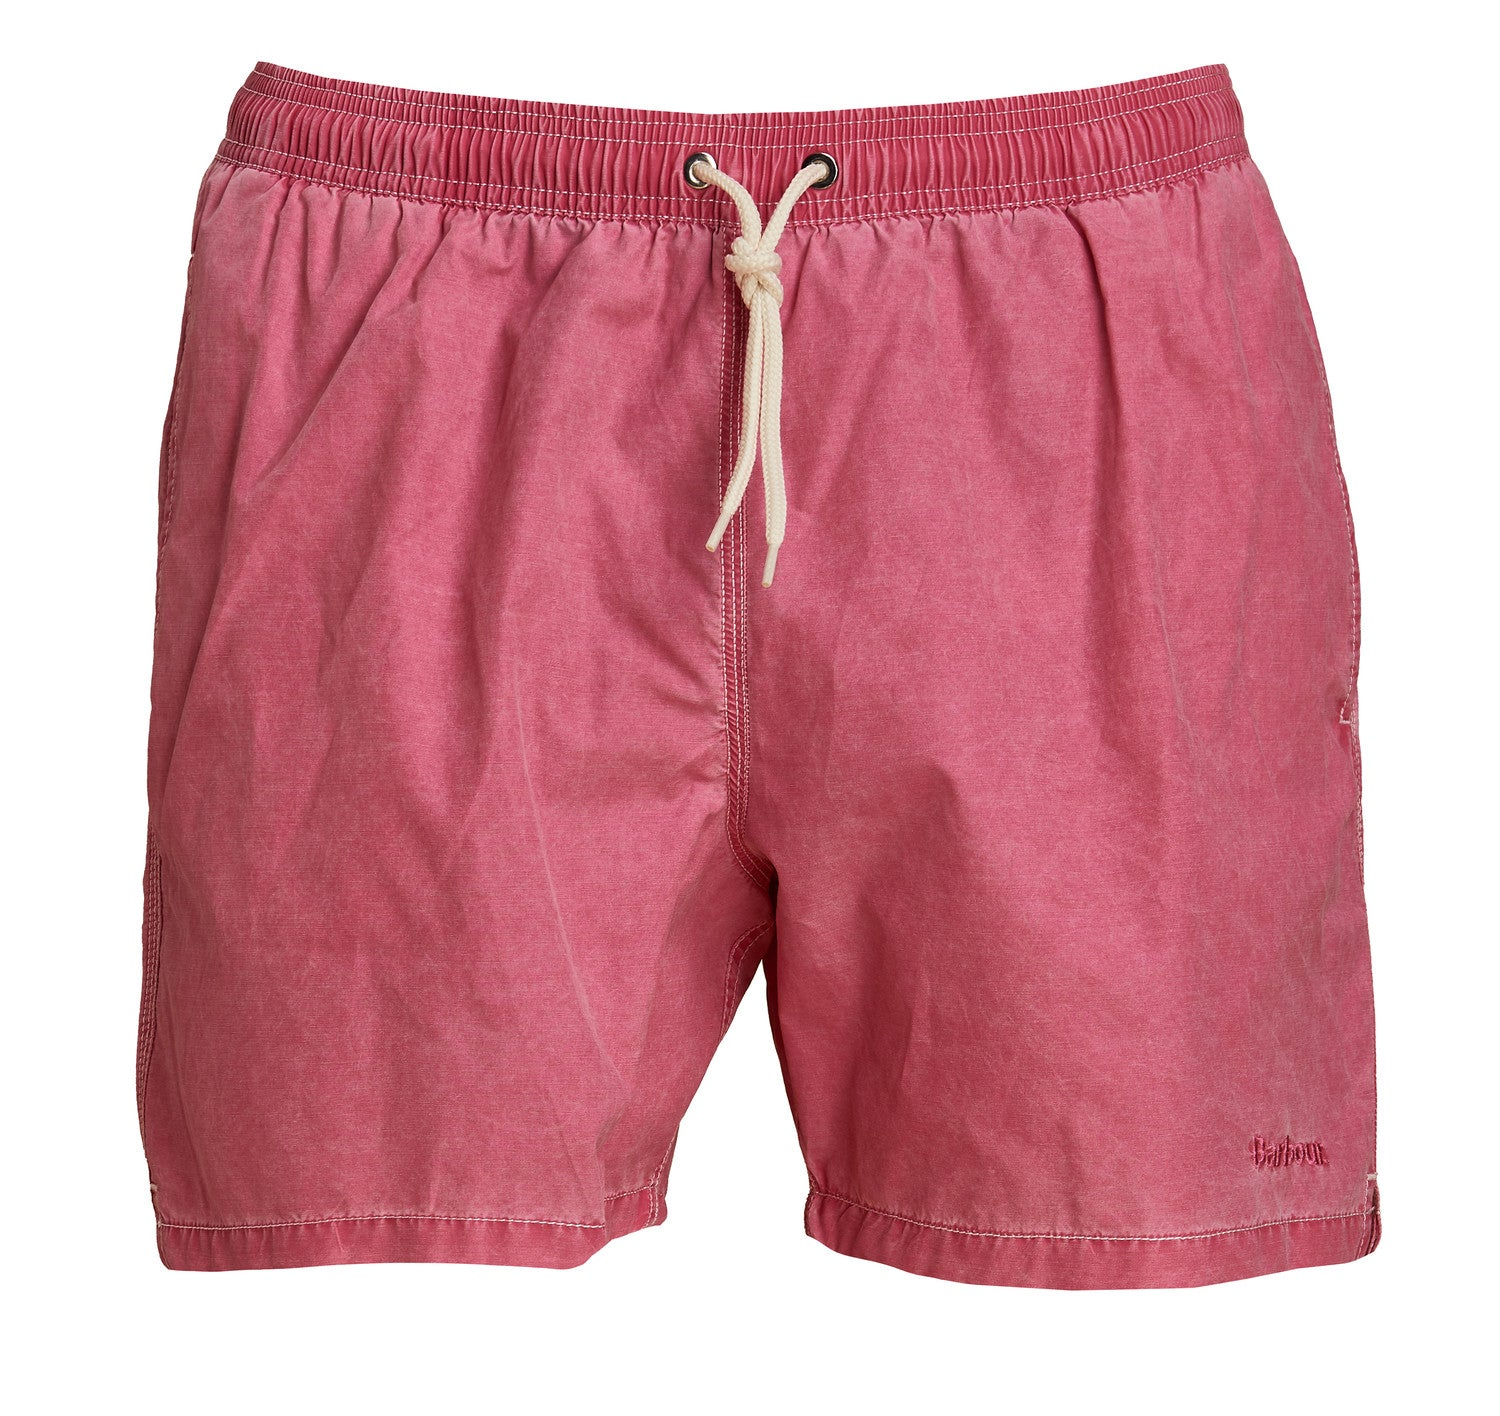 Barbour Turnberry Swim Short for Men in Sorbet